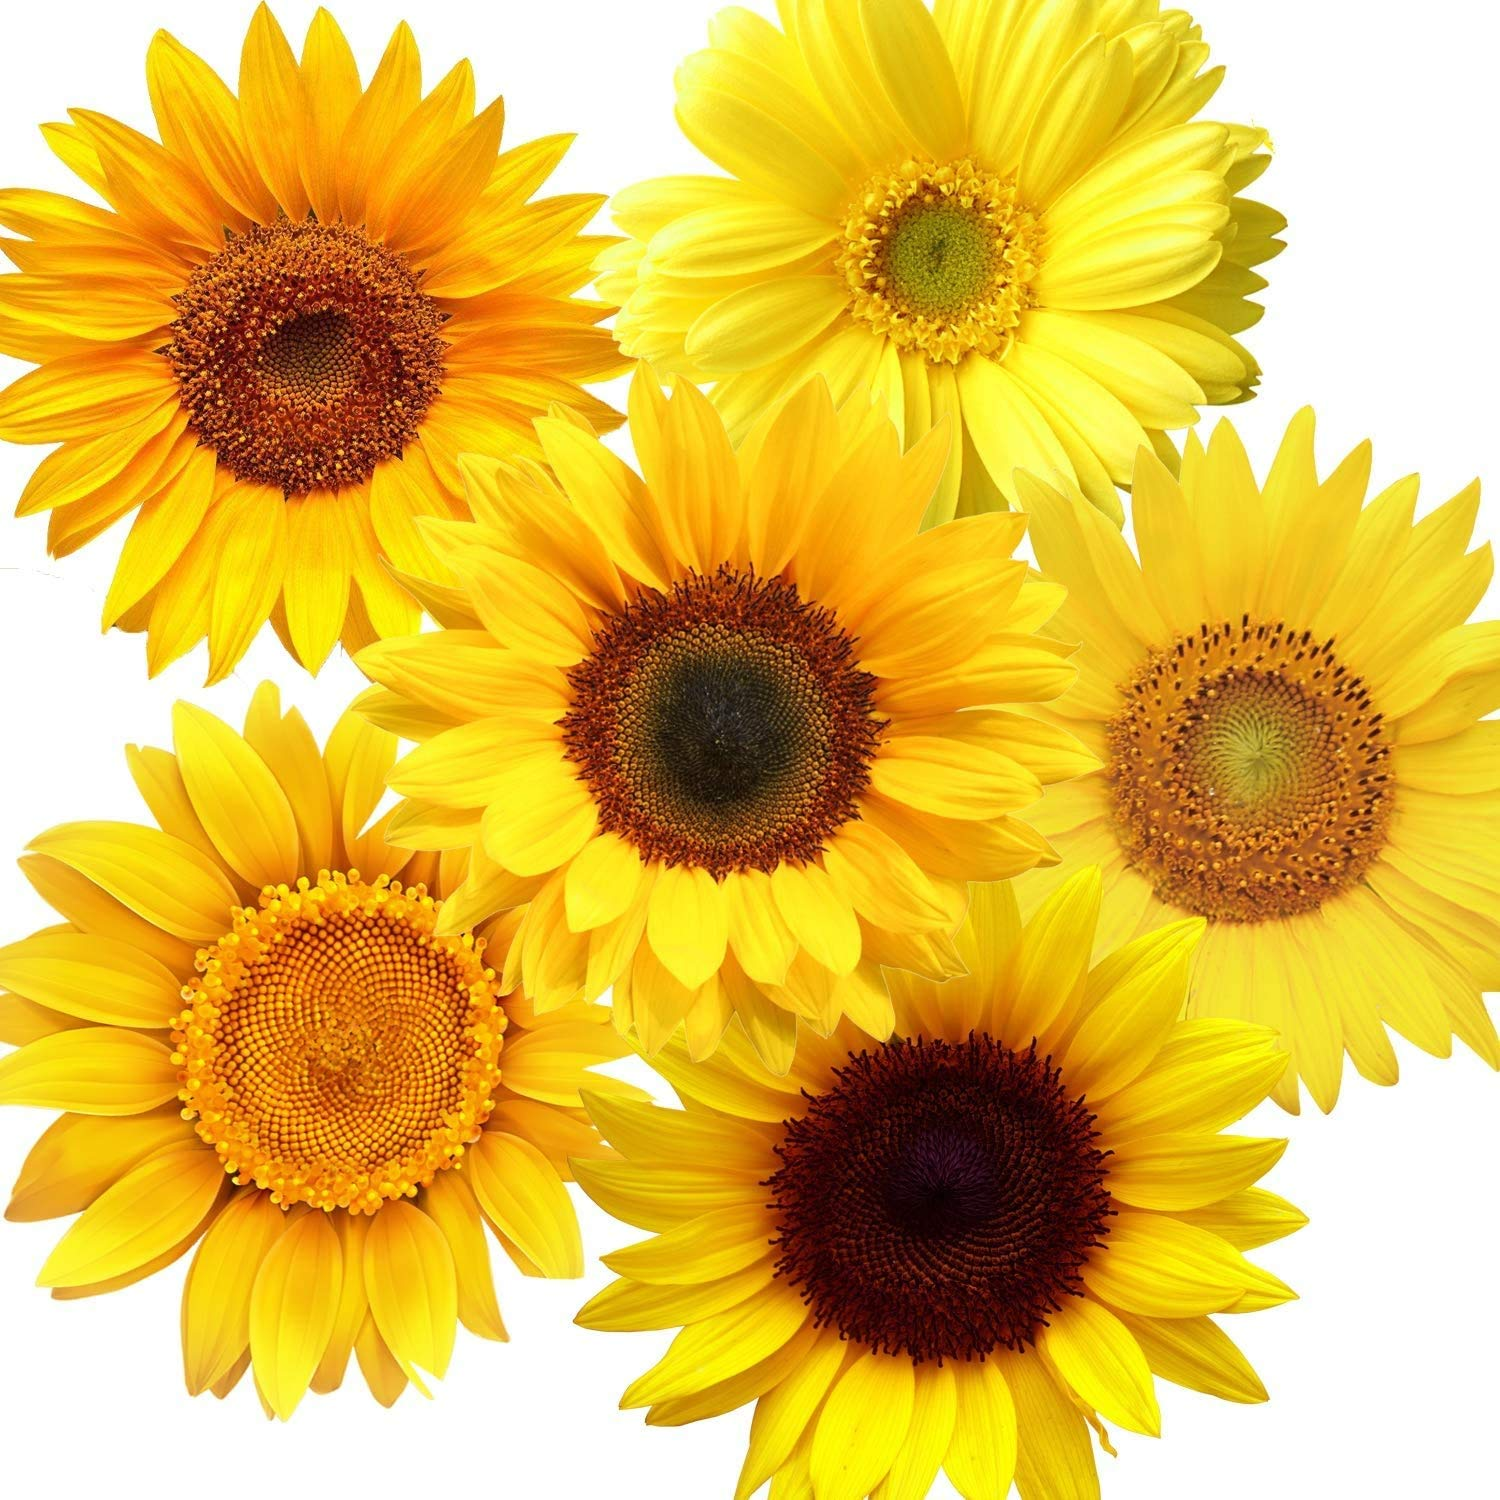 72 Pieces Removable Sunflowers Wall Stickers Peel and Stick 3D Yellow Flower Wall Decals Self-Adhesive Sunflower Stickers for Kids Baby Bathroom Living Room Kitchen